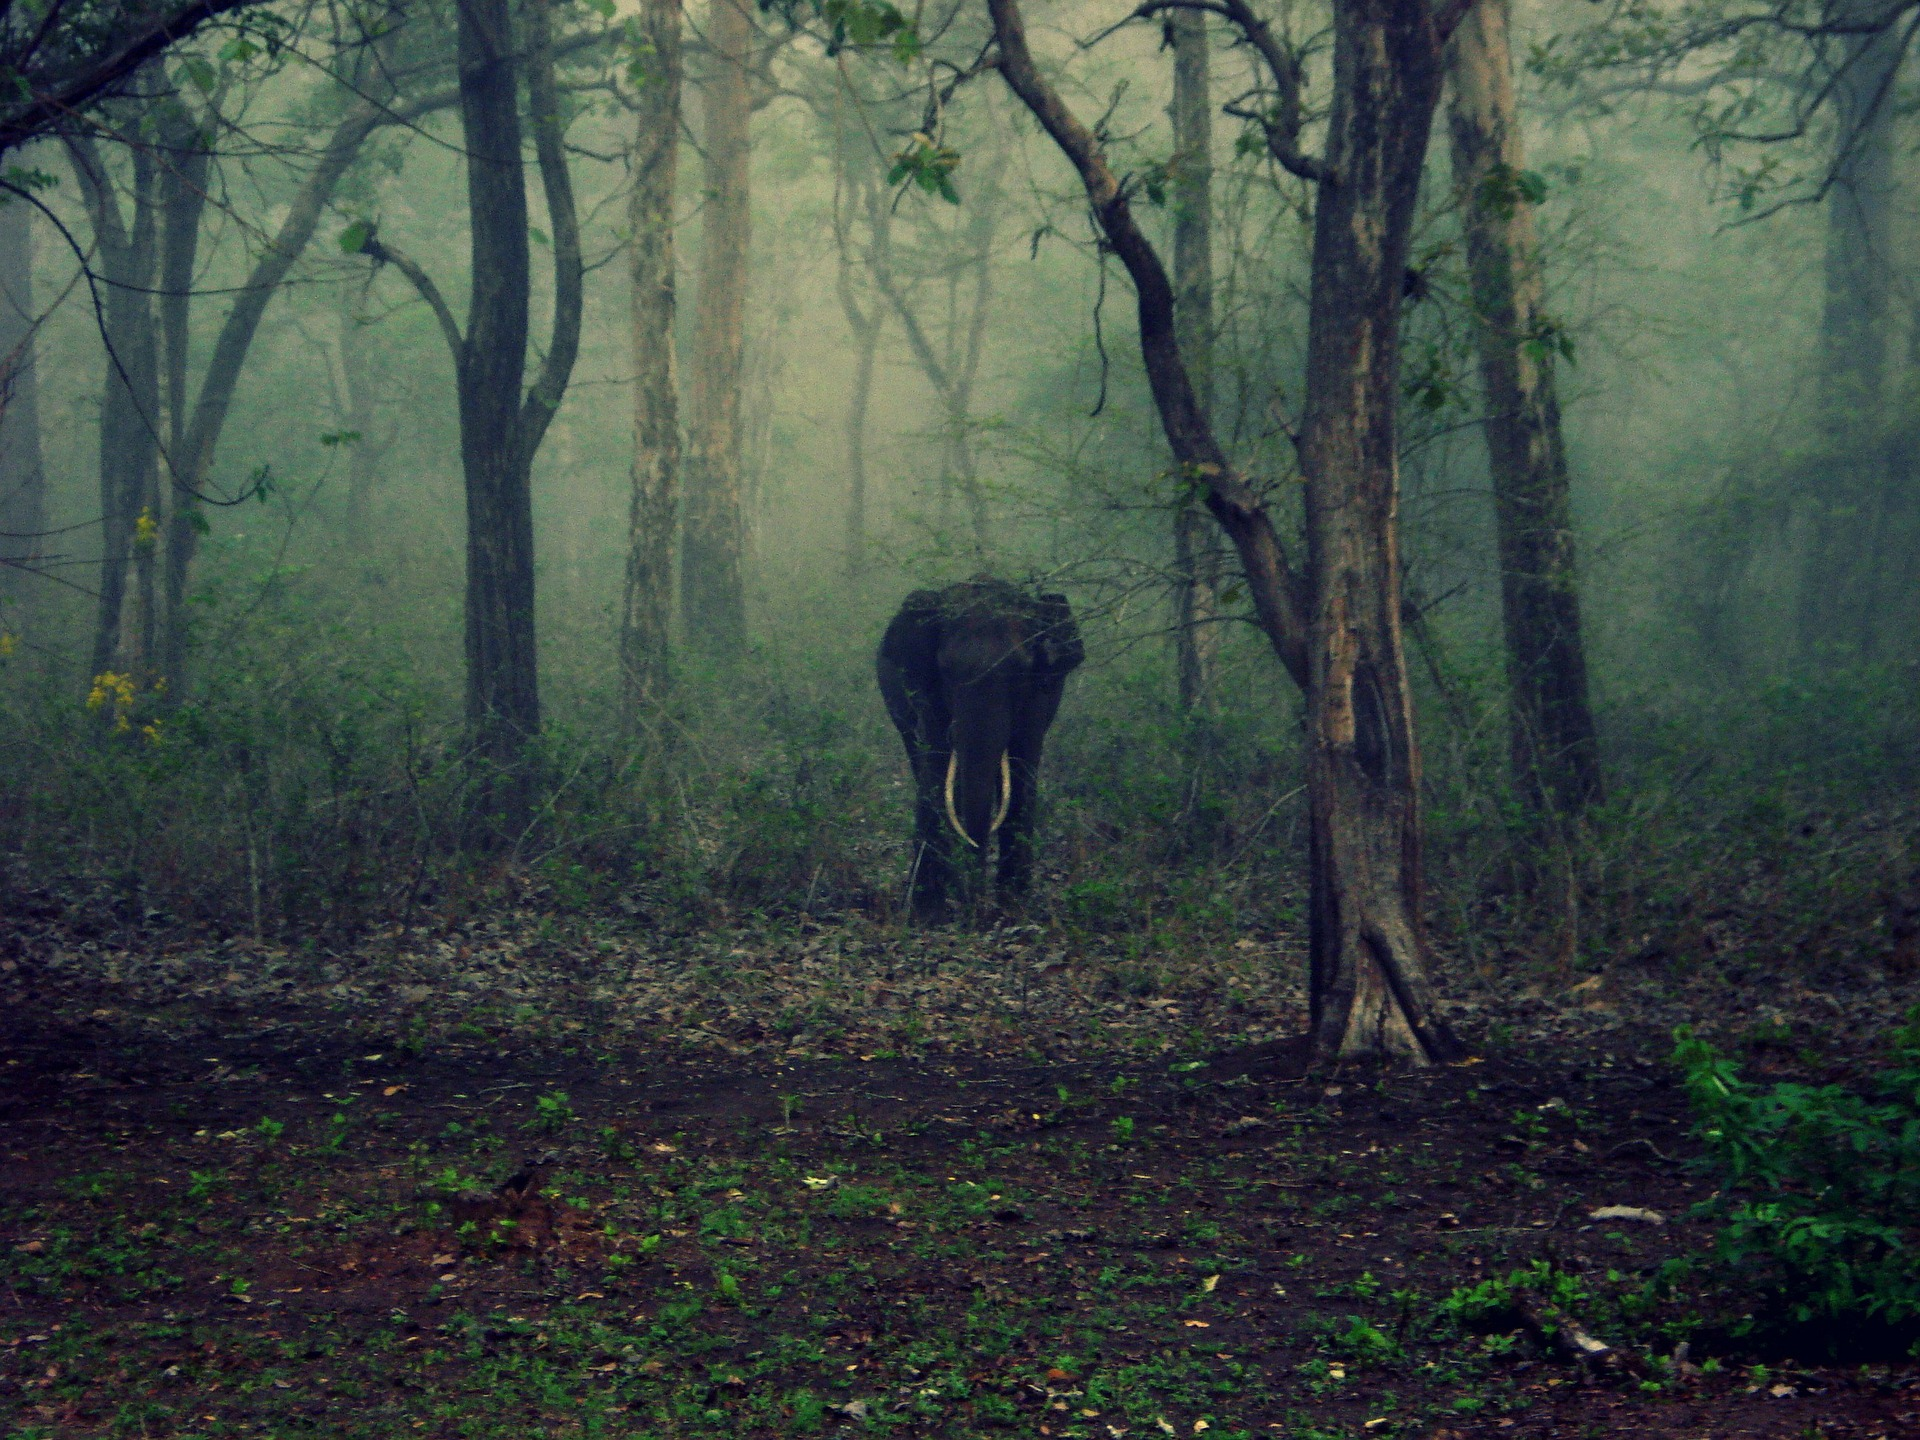 There is perhaps no large wild animal that dies unnaturally in such large numbers in single events as do elephants due to collisions with trains. Credit: walterjenny86/pixabay